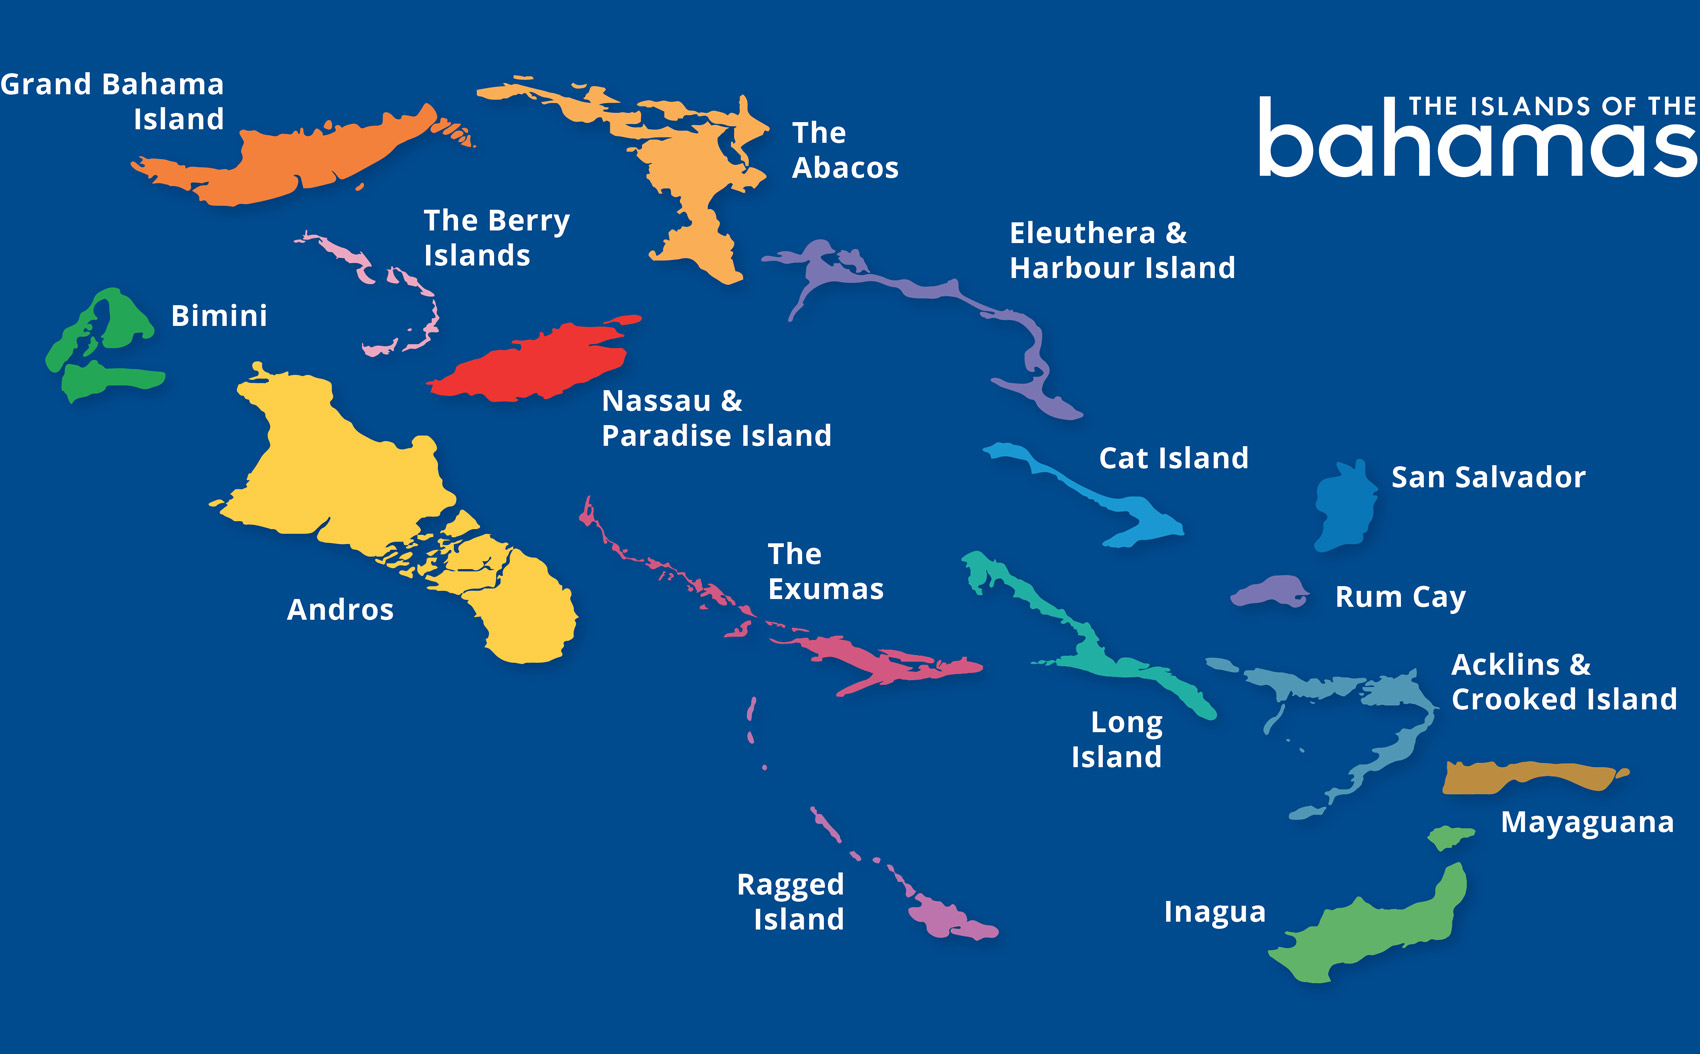 IFF Islands_The Islands of The Bahamas Map Image_Bahamas.com